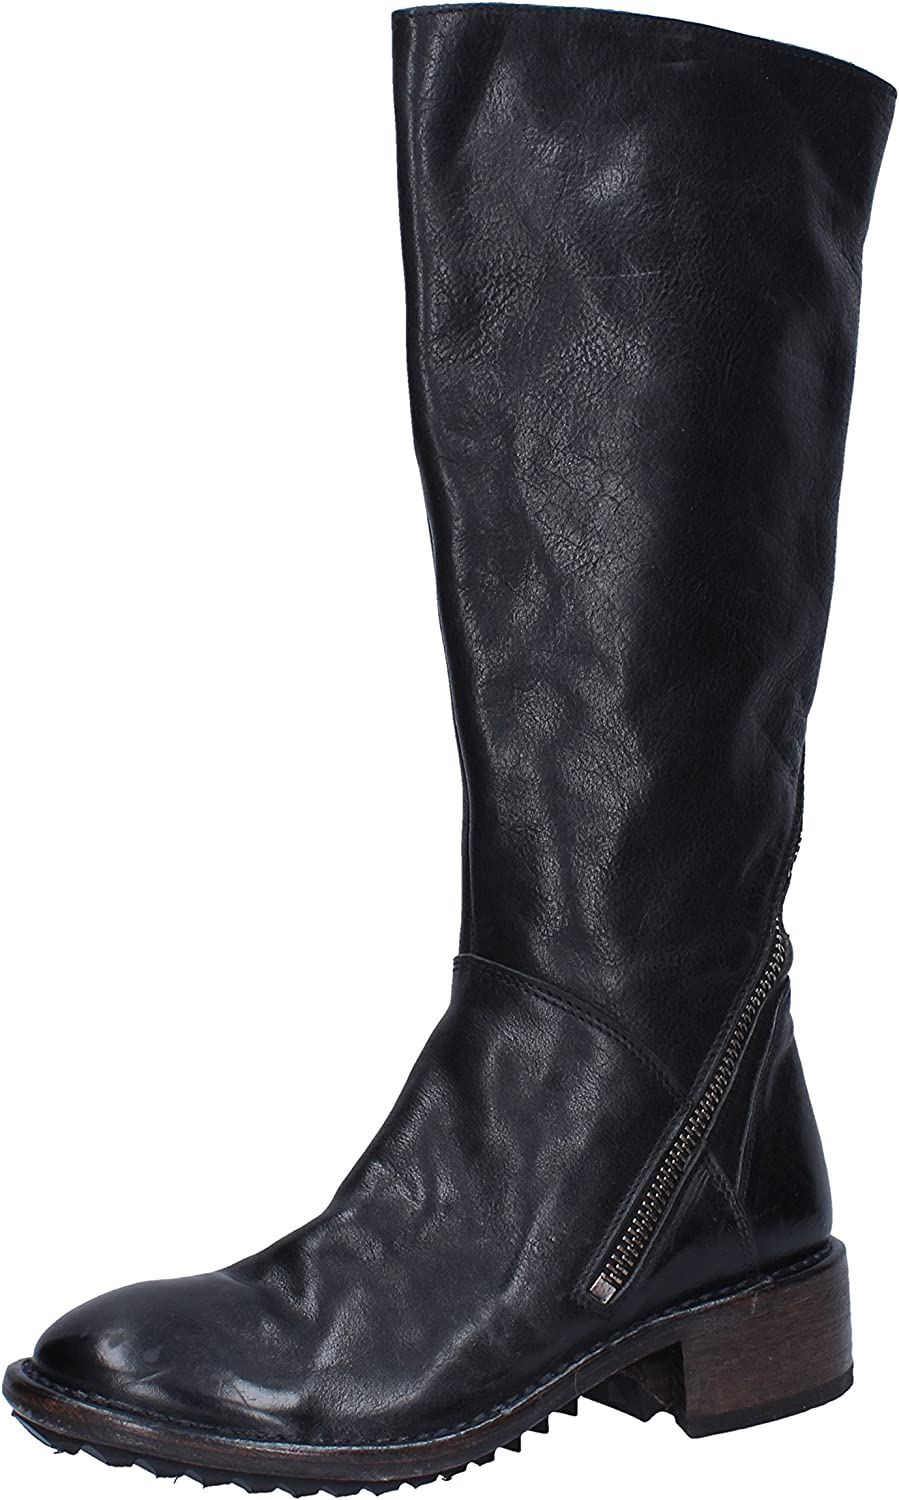 MOMA Boots Womens Leather Black